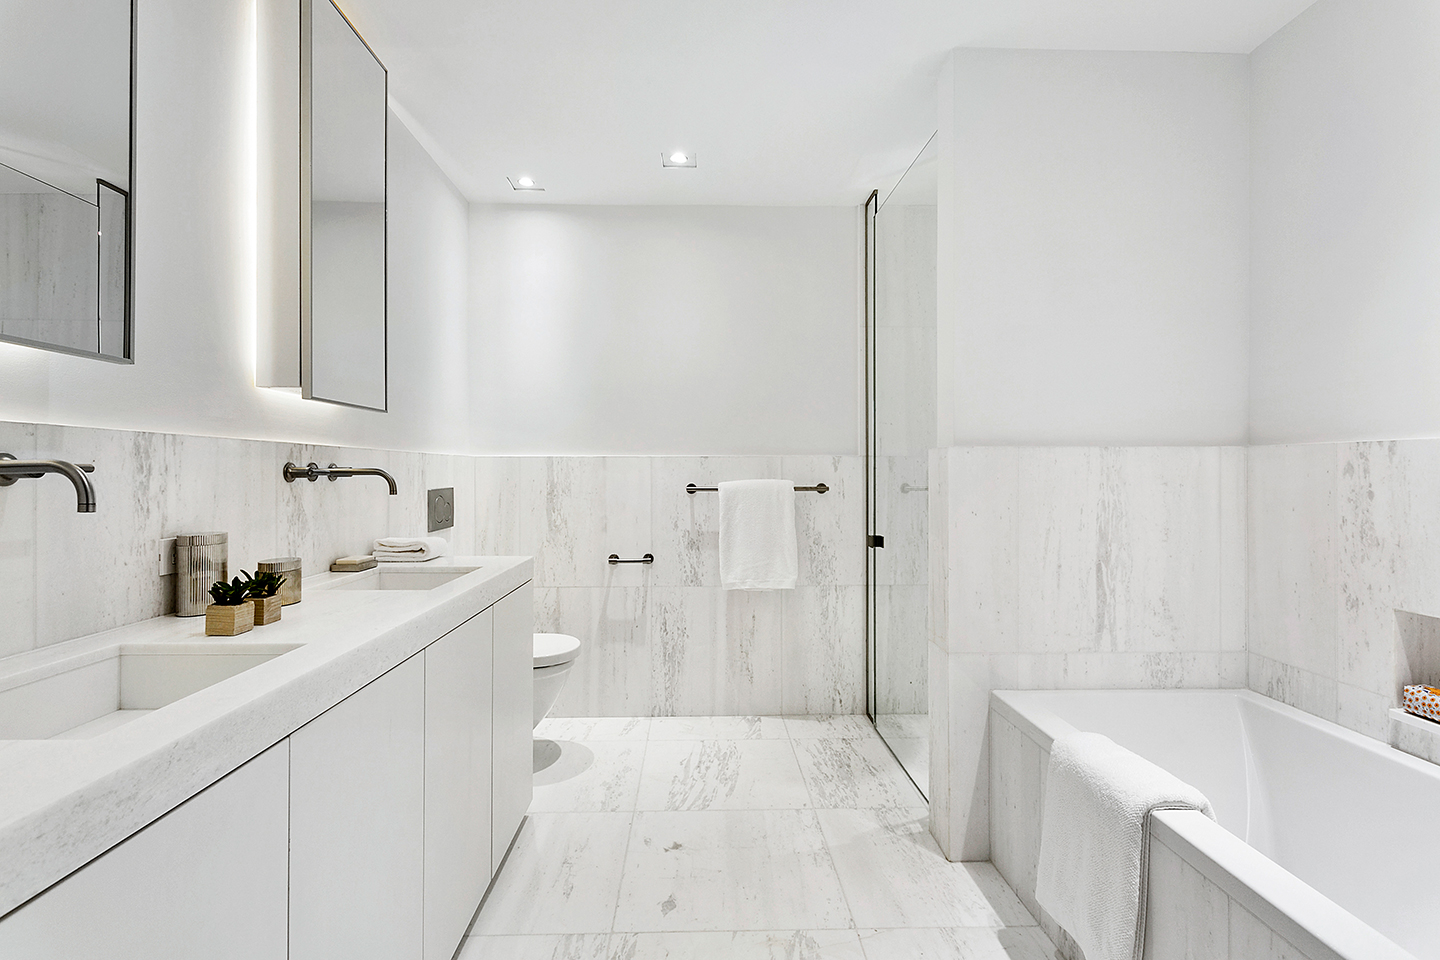 Finely honed marble countertops and wall cladding in the master bathroom by Piet Boon